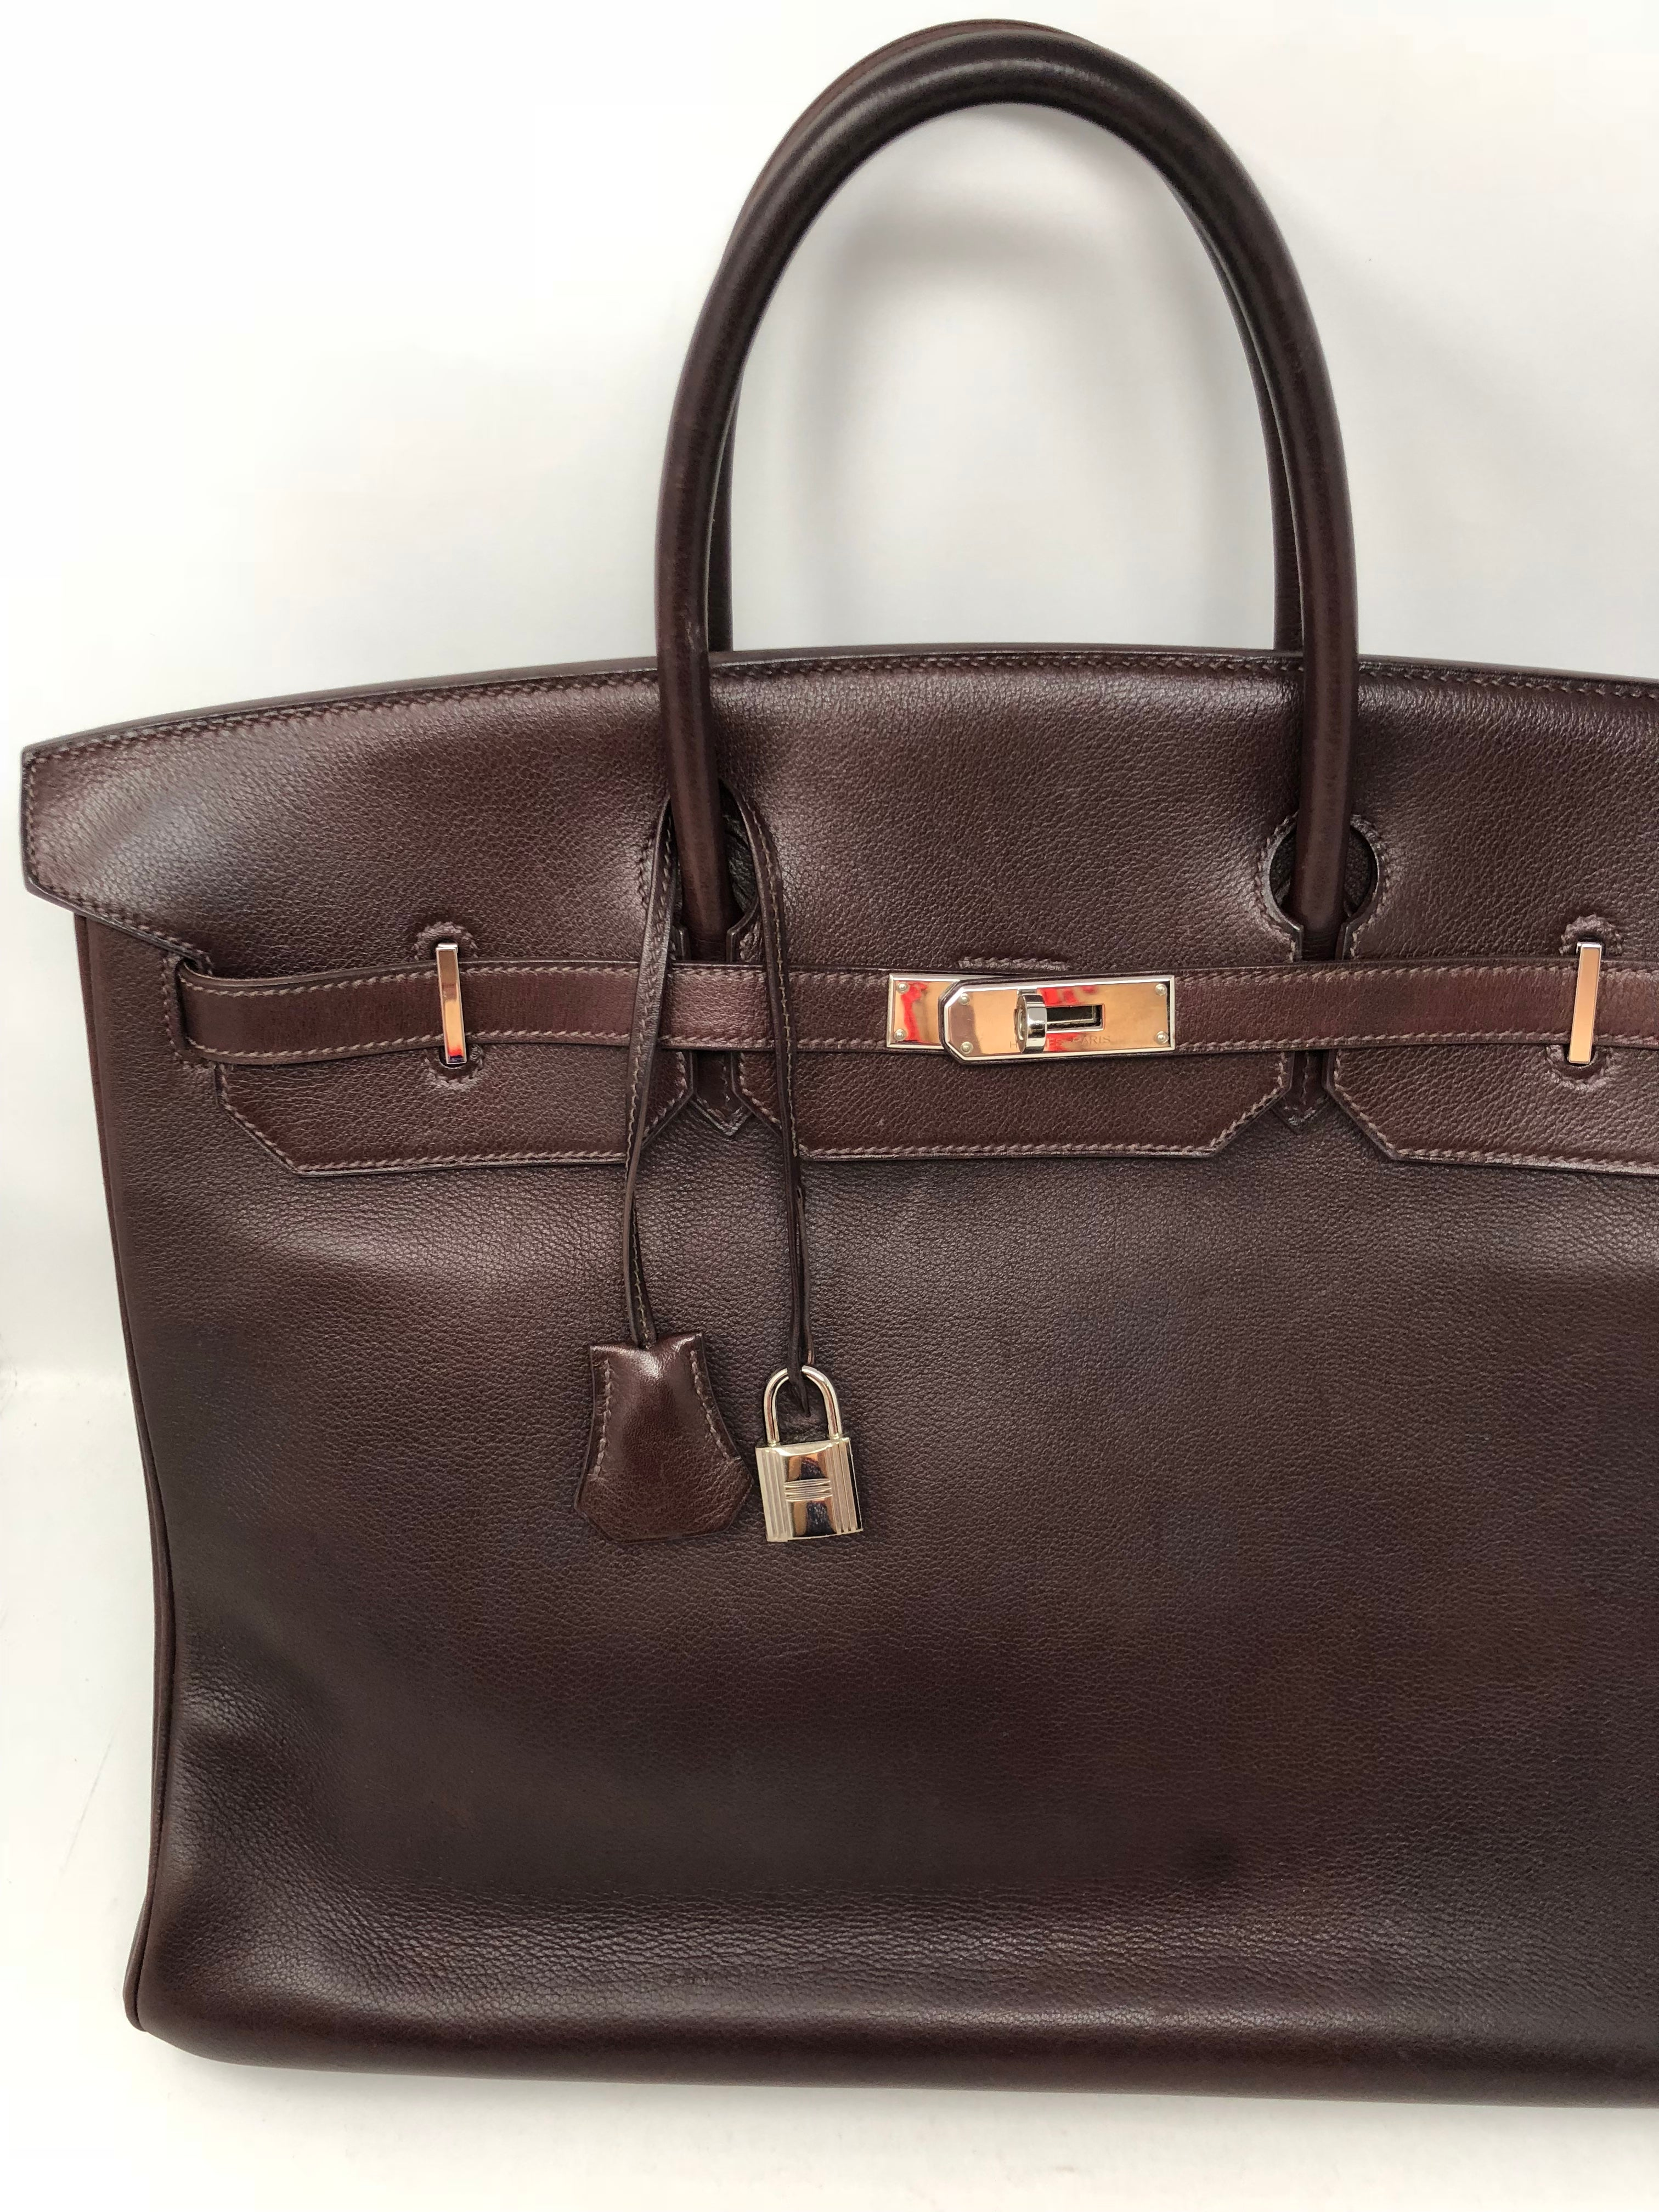 8f9d3fefd03e Hermes Rouge Palladium Hardware Birkin 40 Bag For Sale at 1stdibs